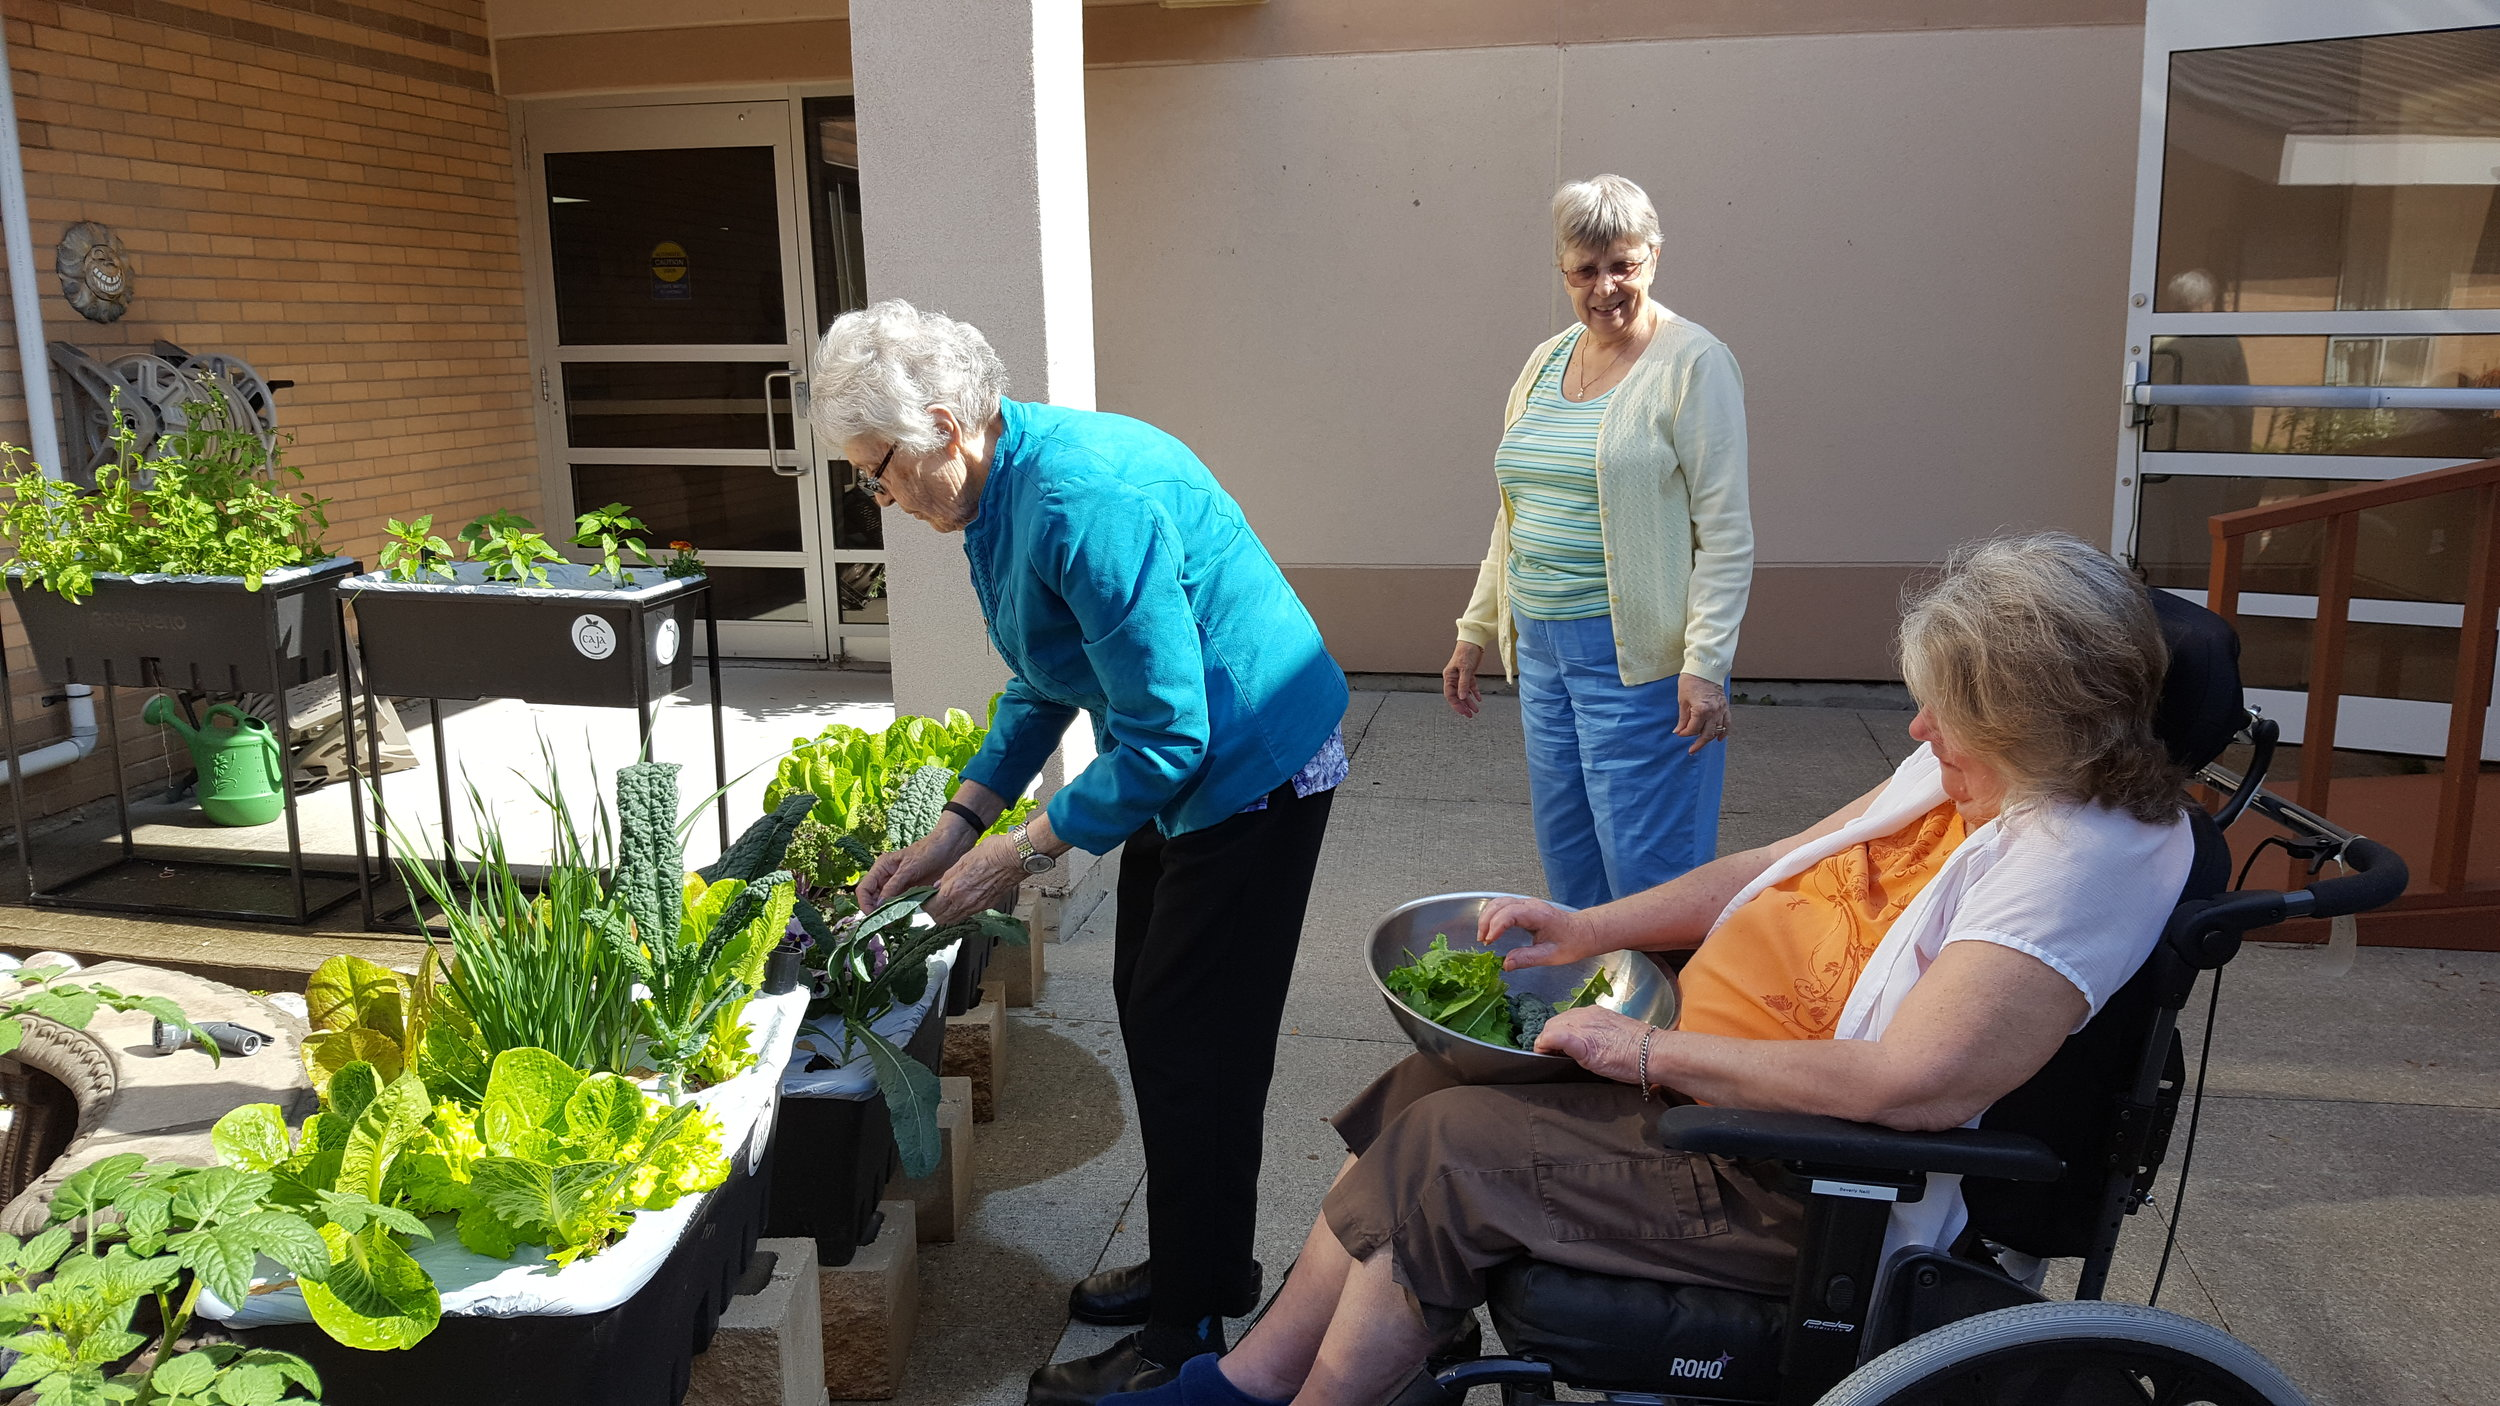 Residents at Grove Park Home harvesting kale from the gardens (Photo from Travis)